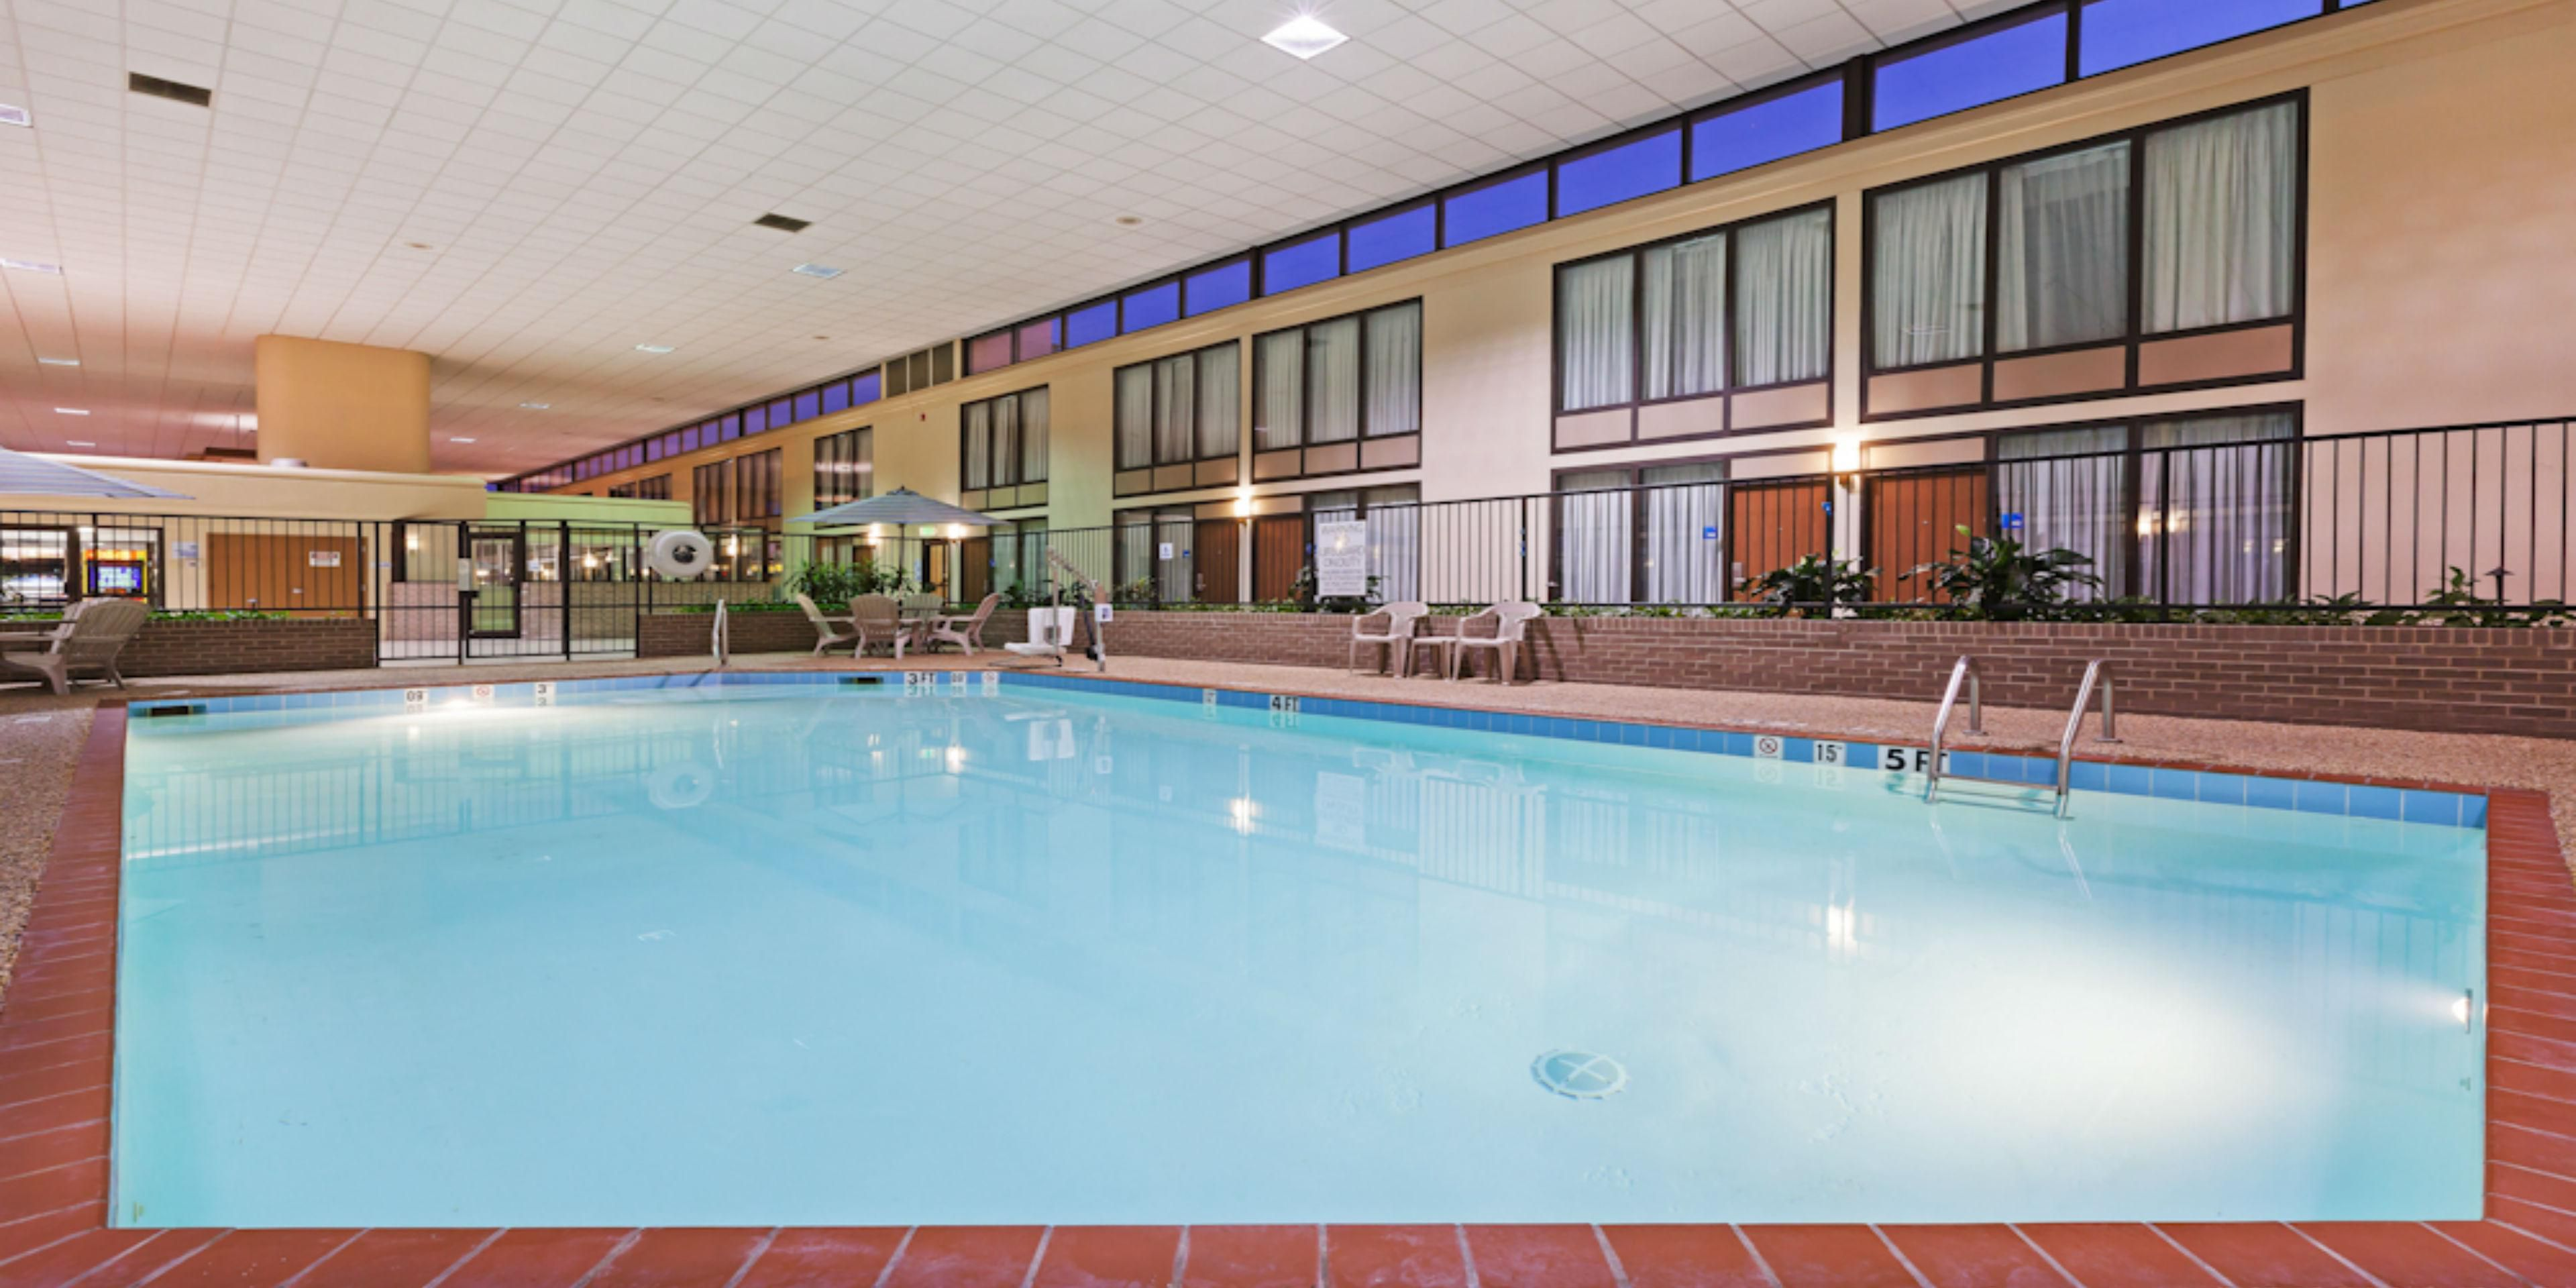 Family leisure little rock arkansas - Holiday Inn Express Little Rock 4874615604 2x1